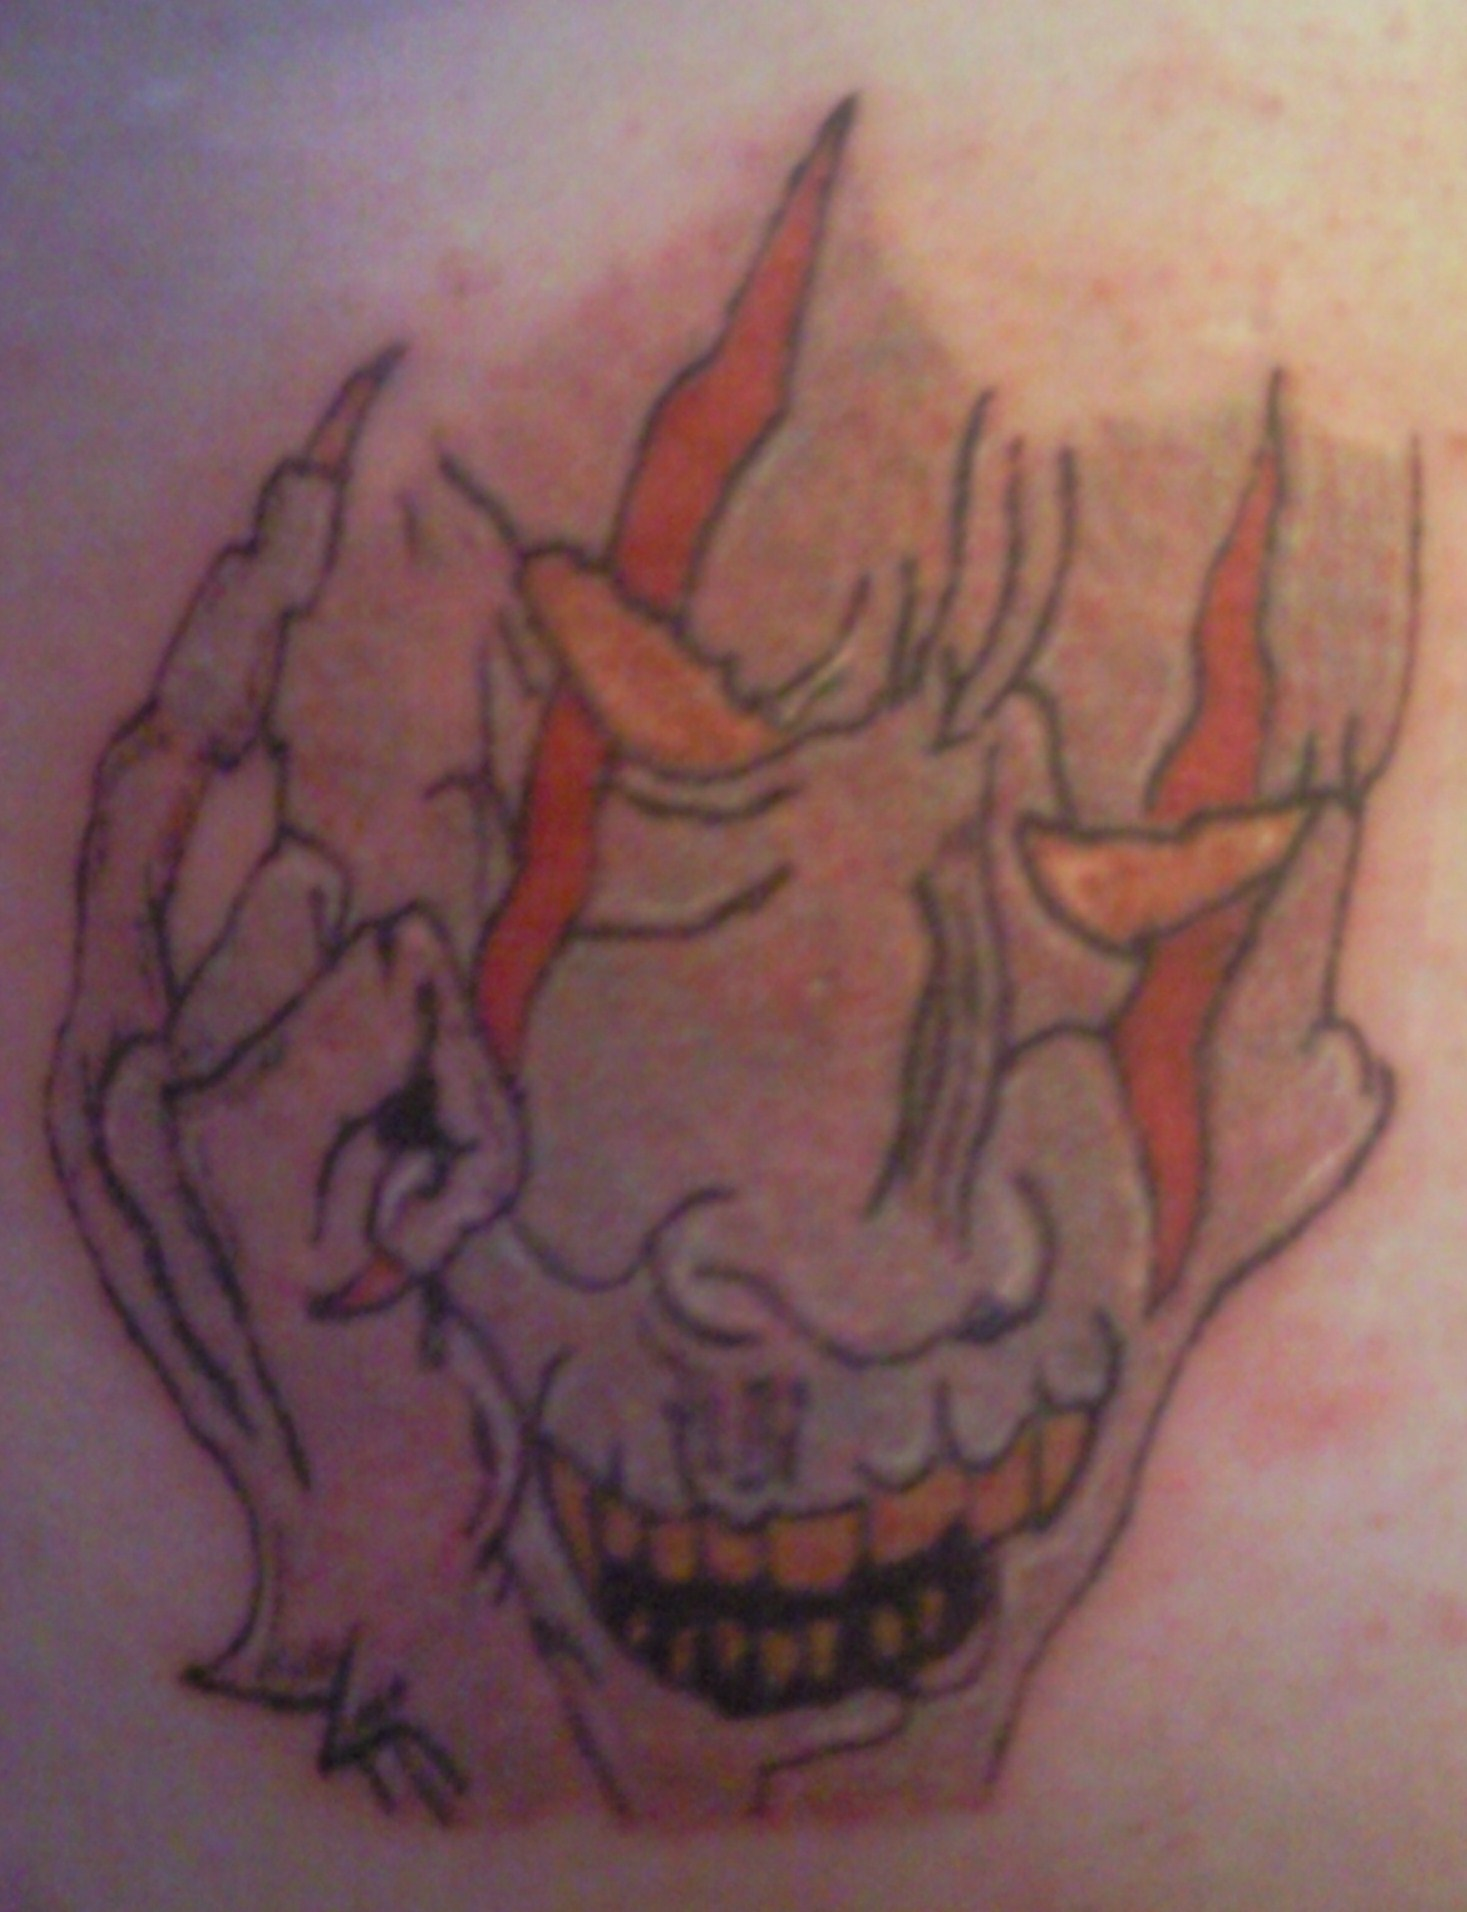 tattoo of demon on my stomach